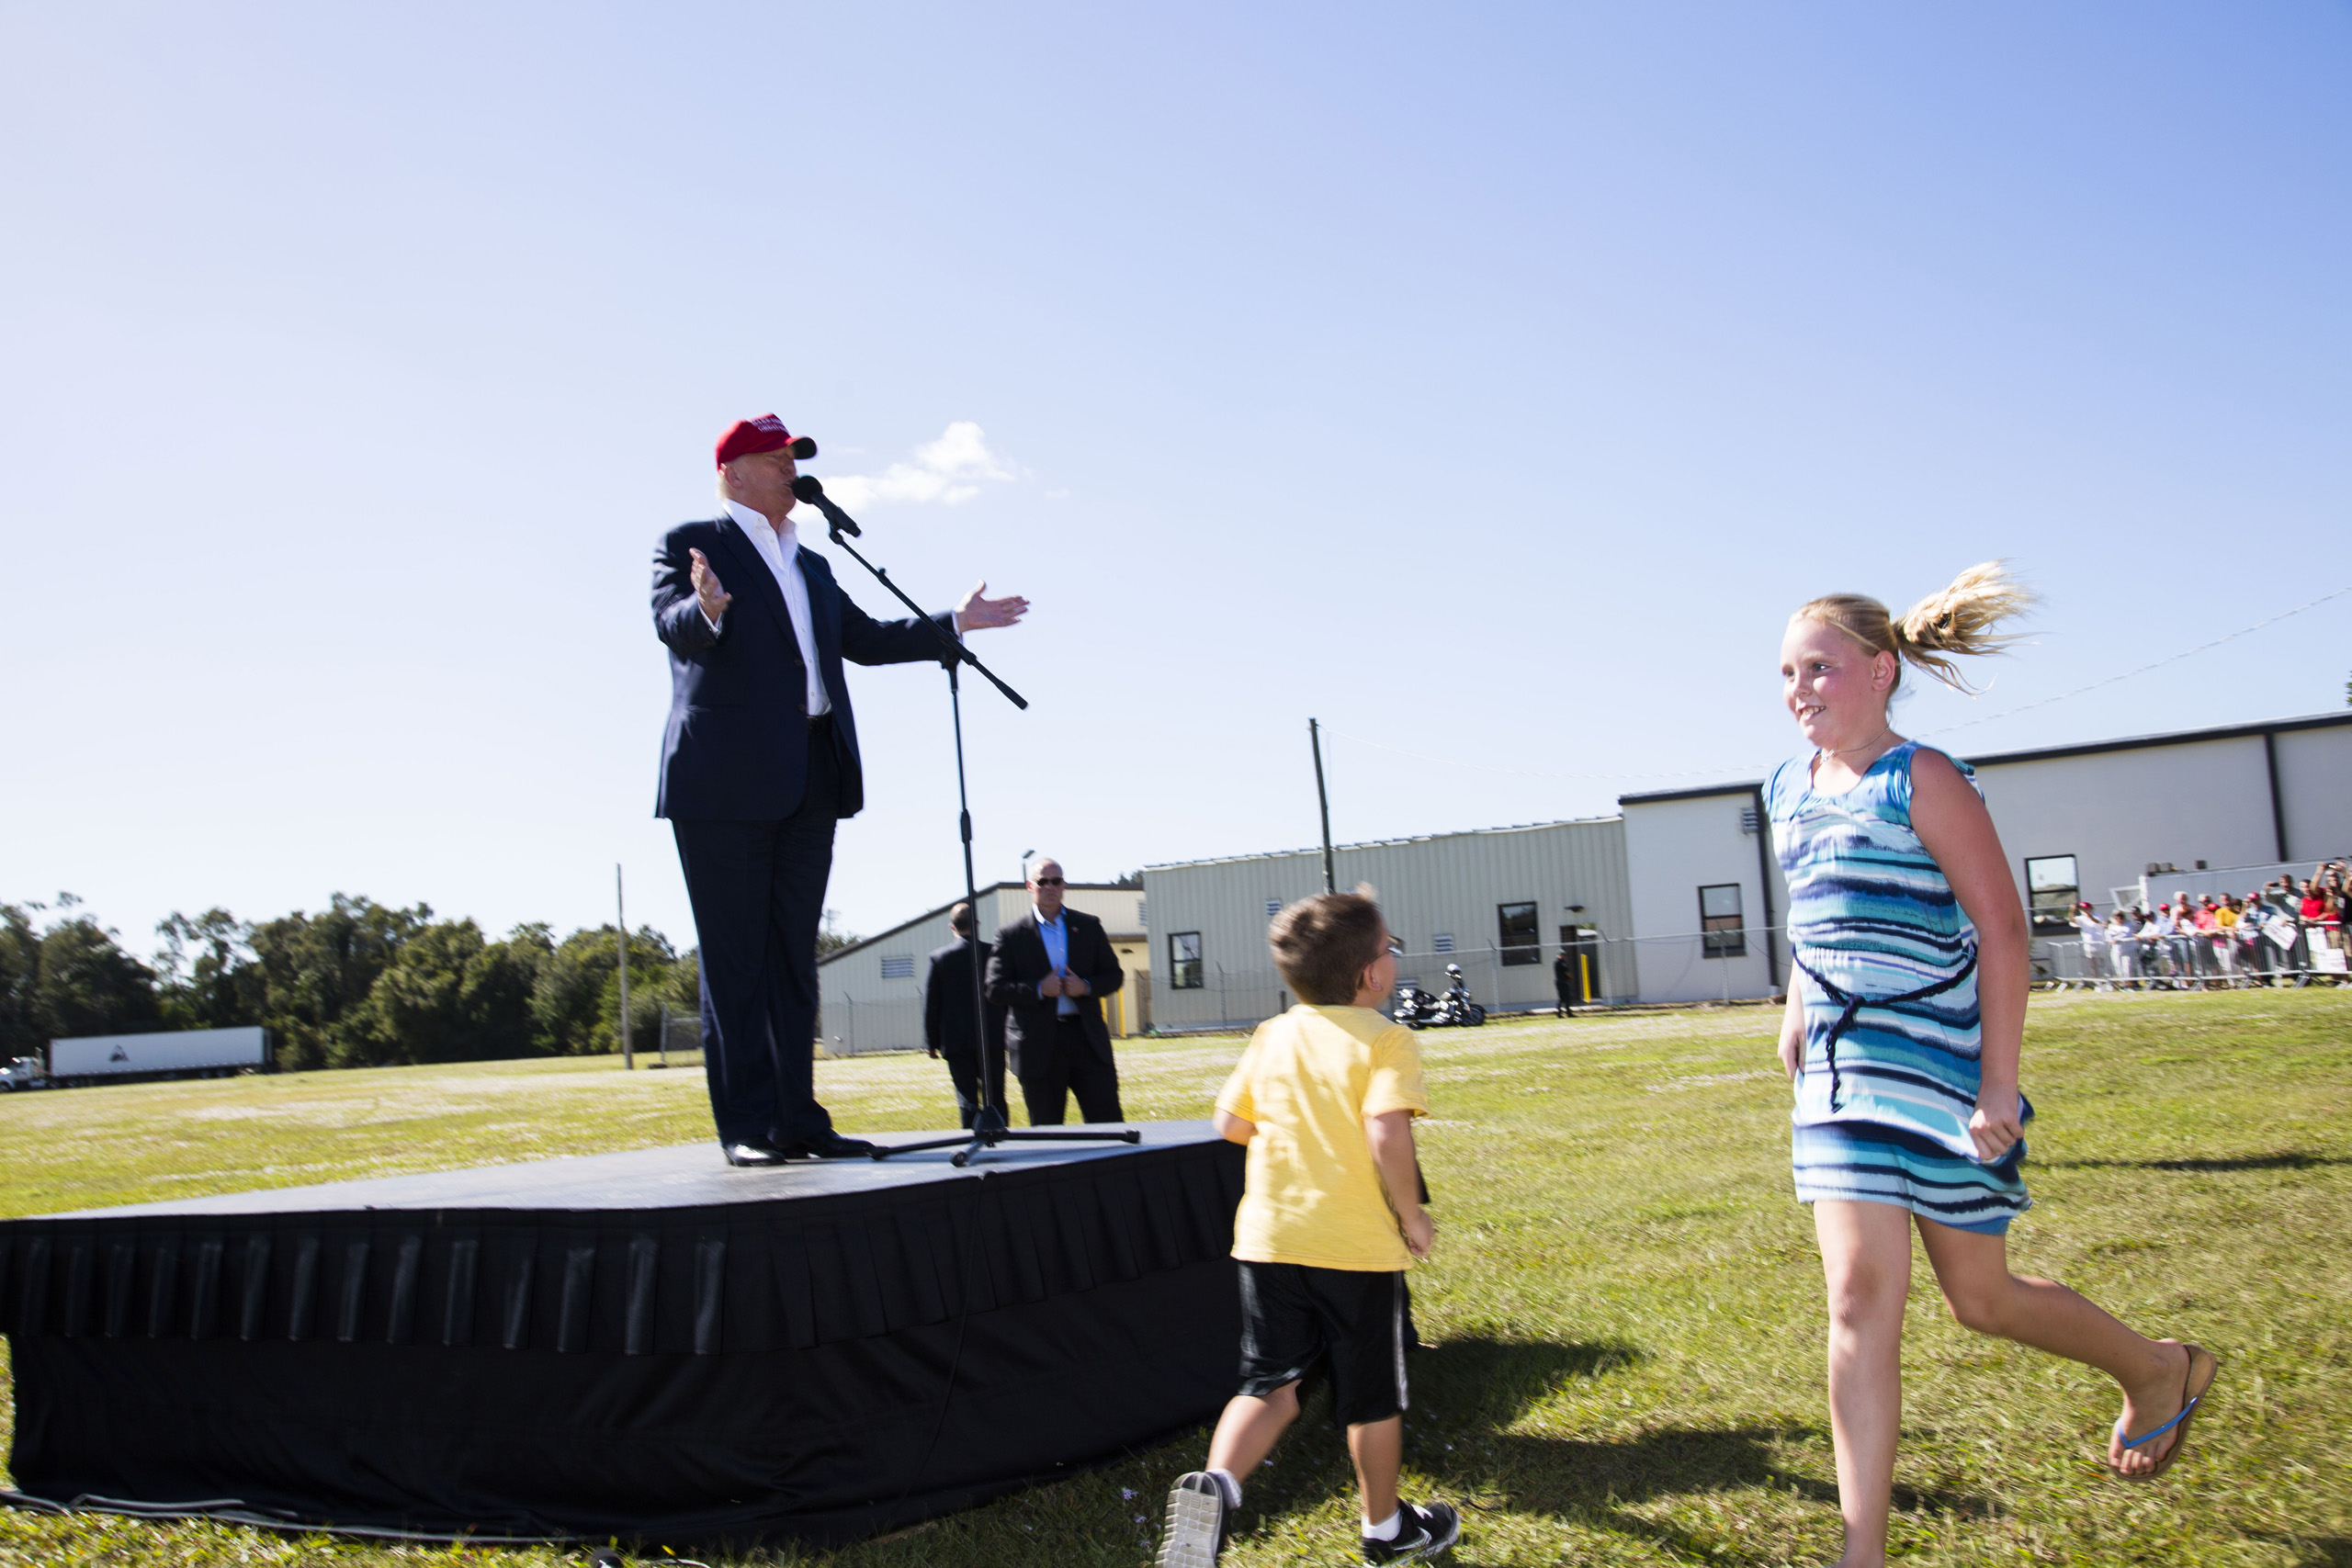 Republican presidential candidate Donald Trump speaks after arriving in his helicopter as a group of children race towards it for ride during a rally in Sarasota, Fla. Nov. 28, 2015.